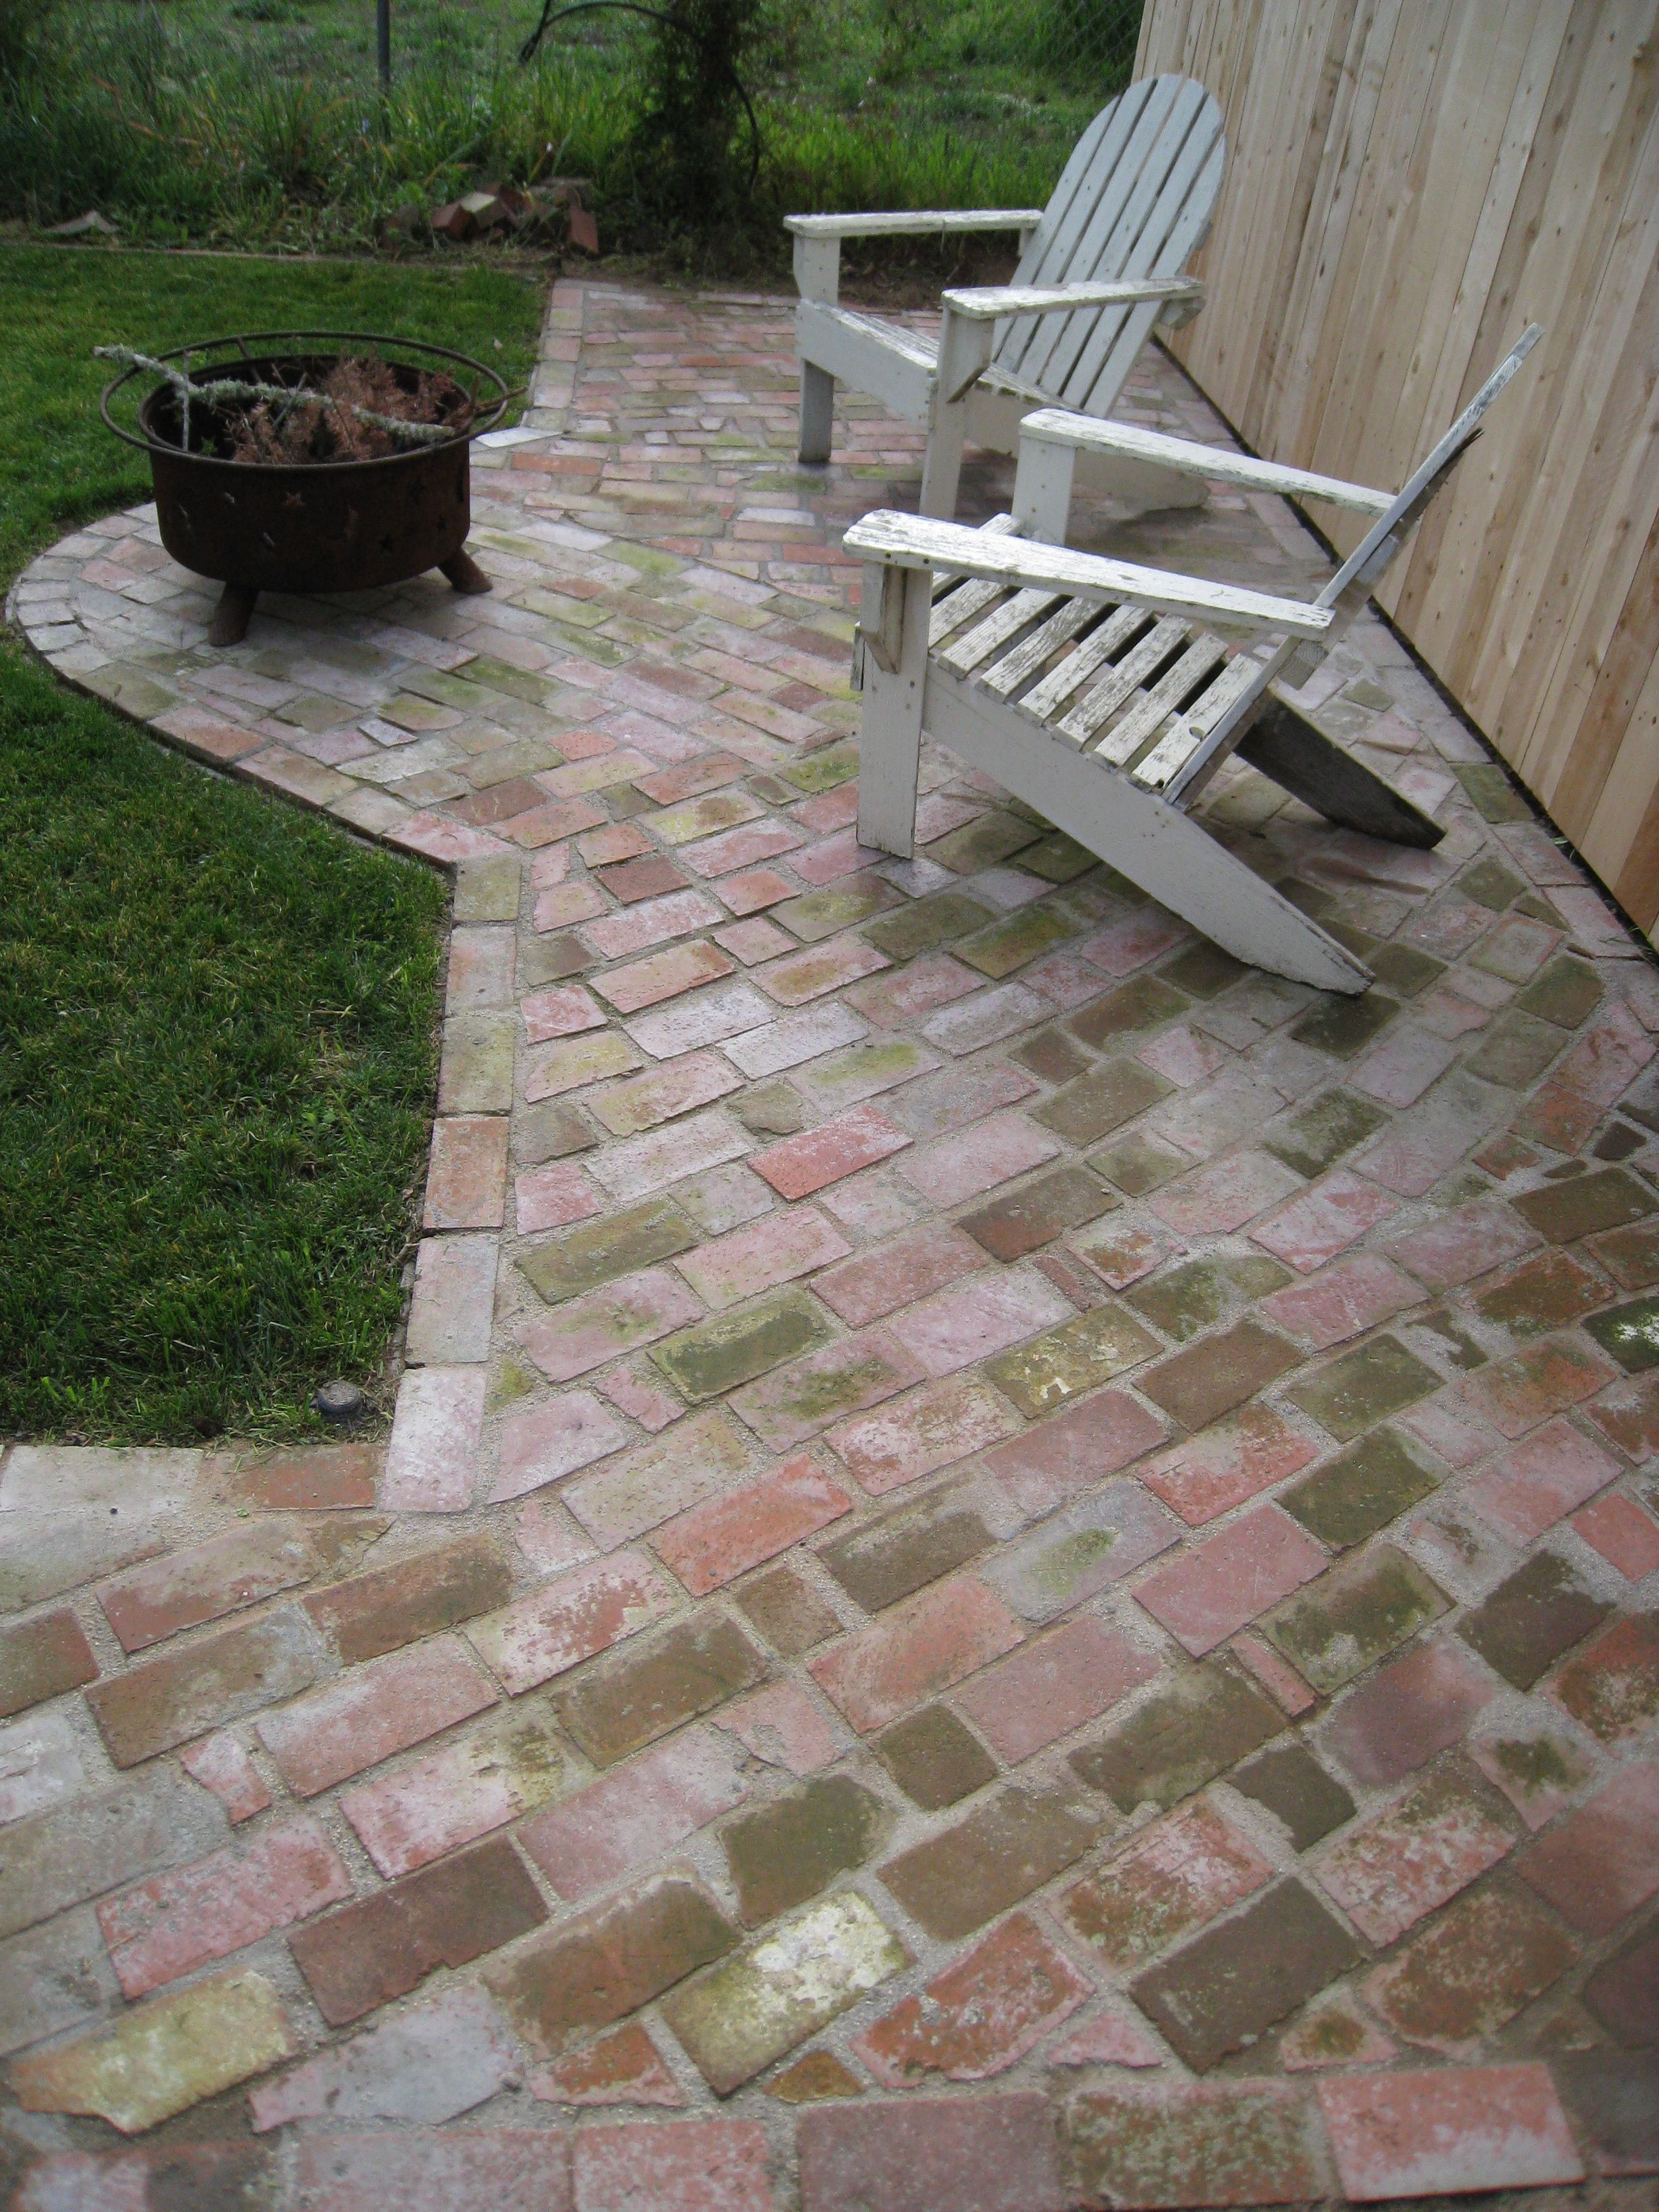 DIY  Basic Steps To Make Attractive Walkways From Reclaimed Brick: Start By  Raking